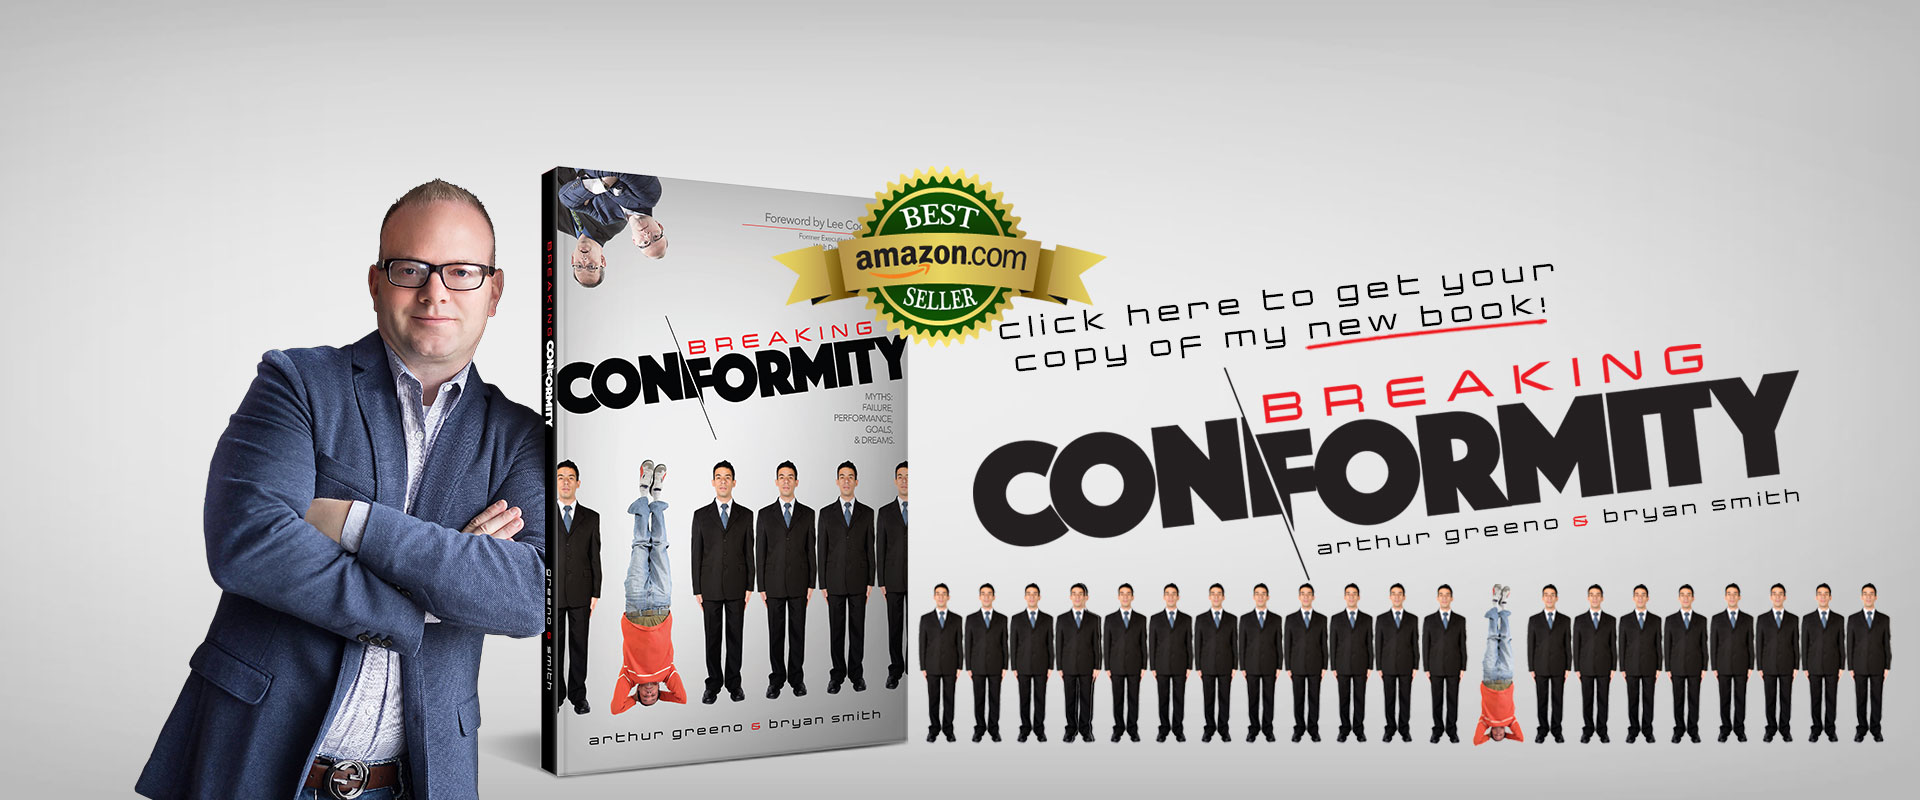 Get your copy of Breaking Conformity today!